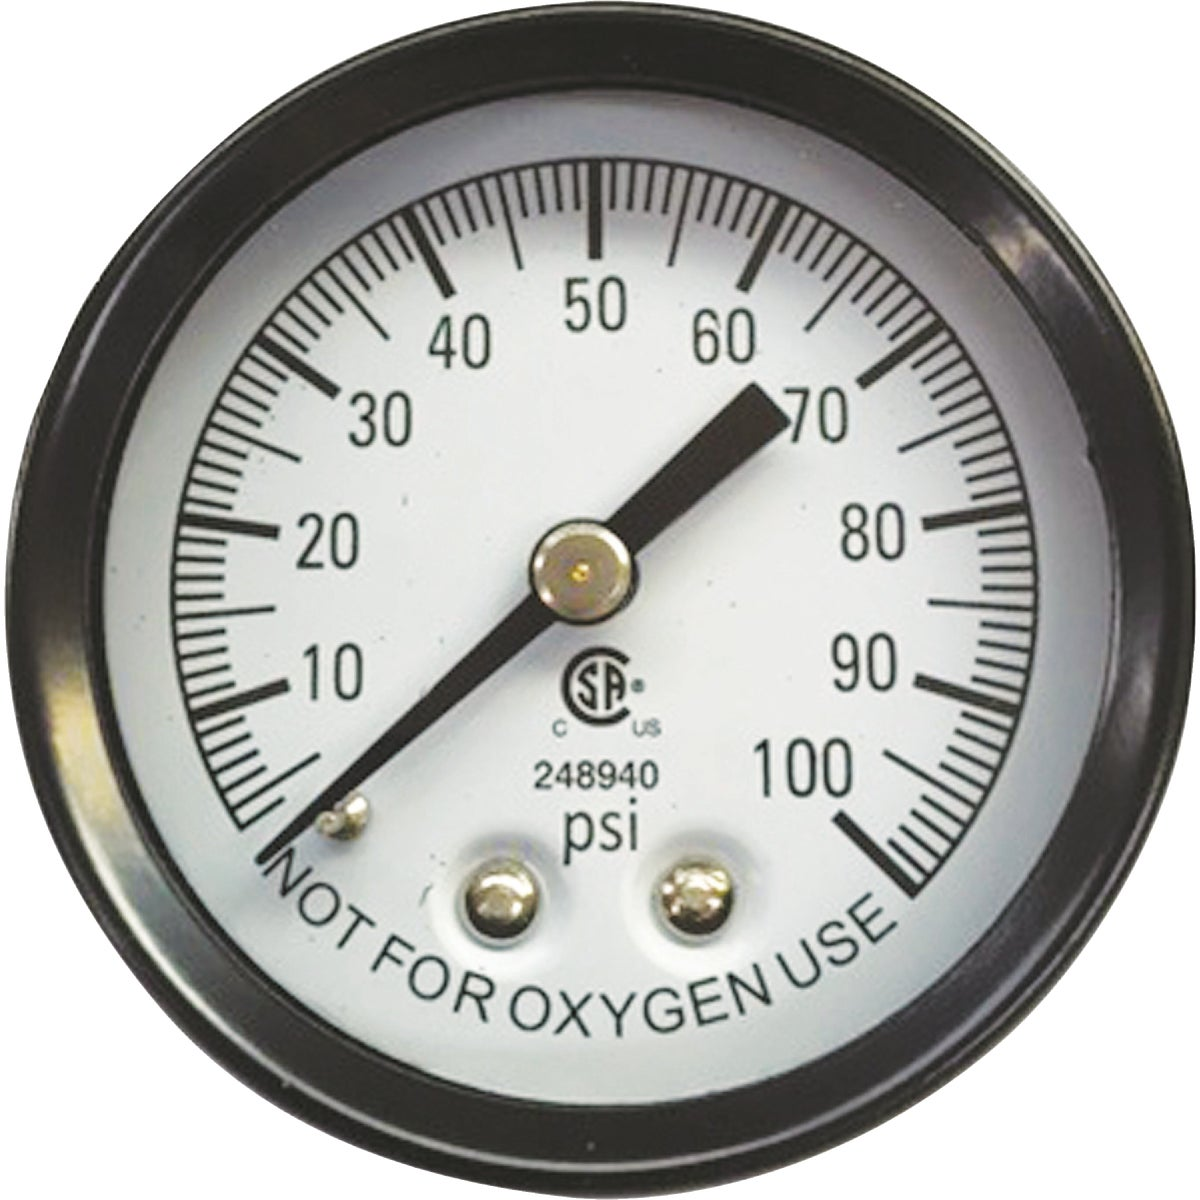 0-100 PRESSURE GAUGE - 66017-WYN by Wayne Water Systems